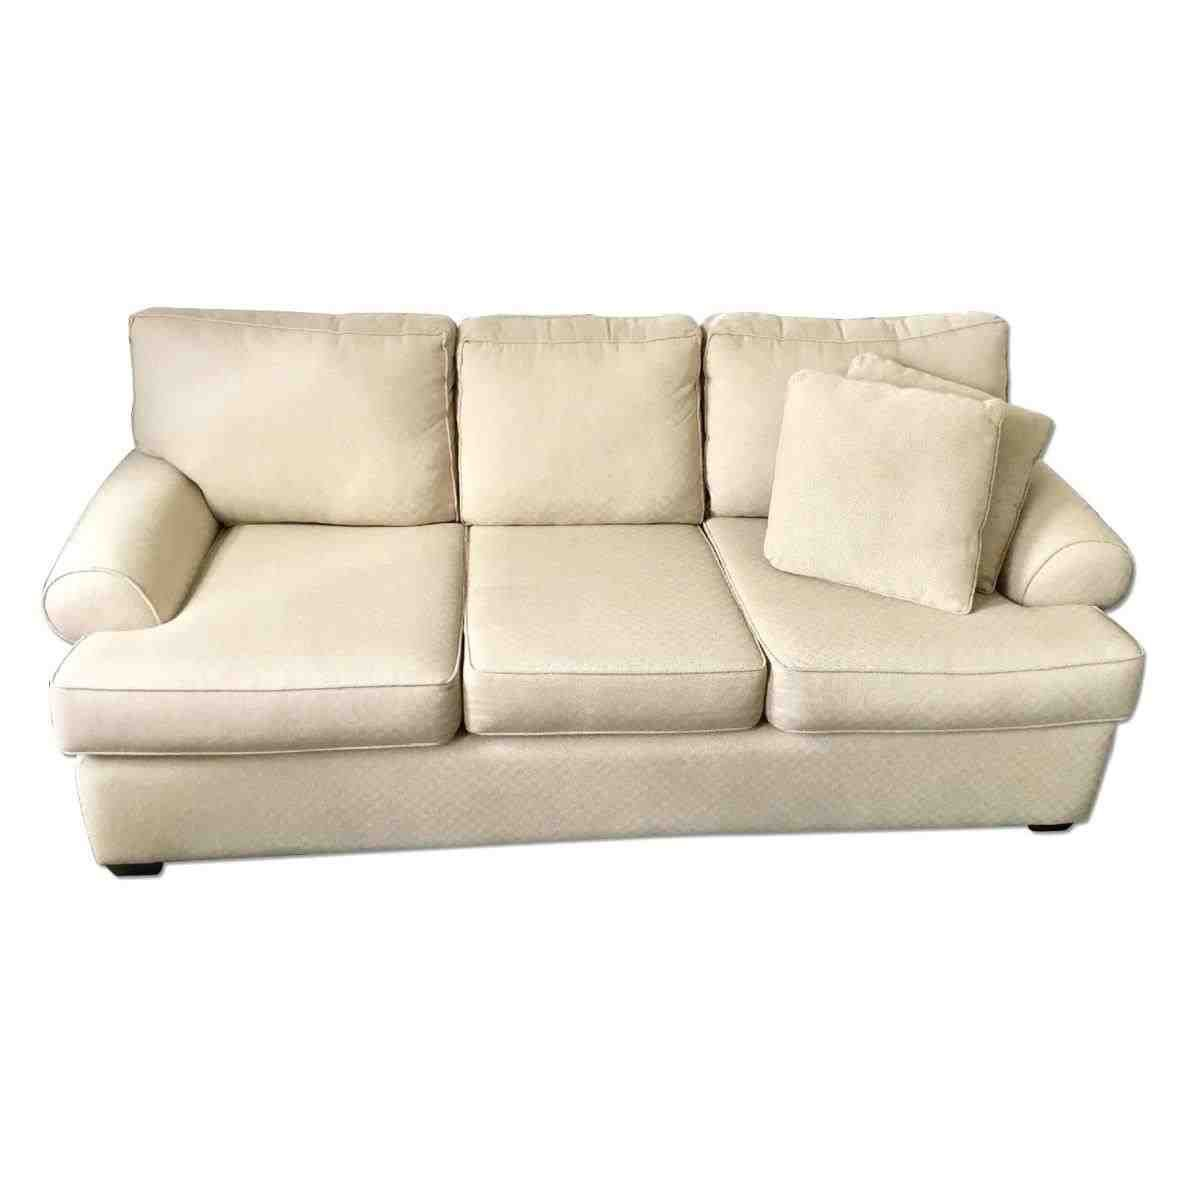 Cheap Sectionals For Sale With Images Plush Couch Shabby Chic